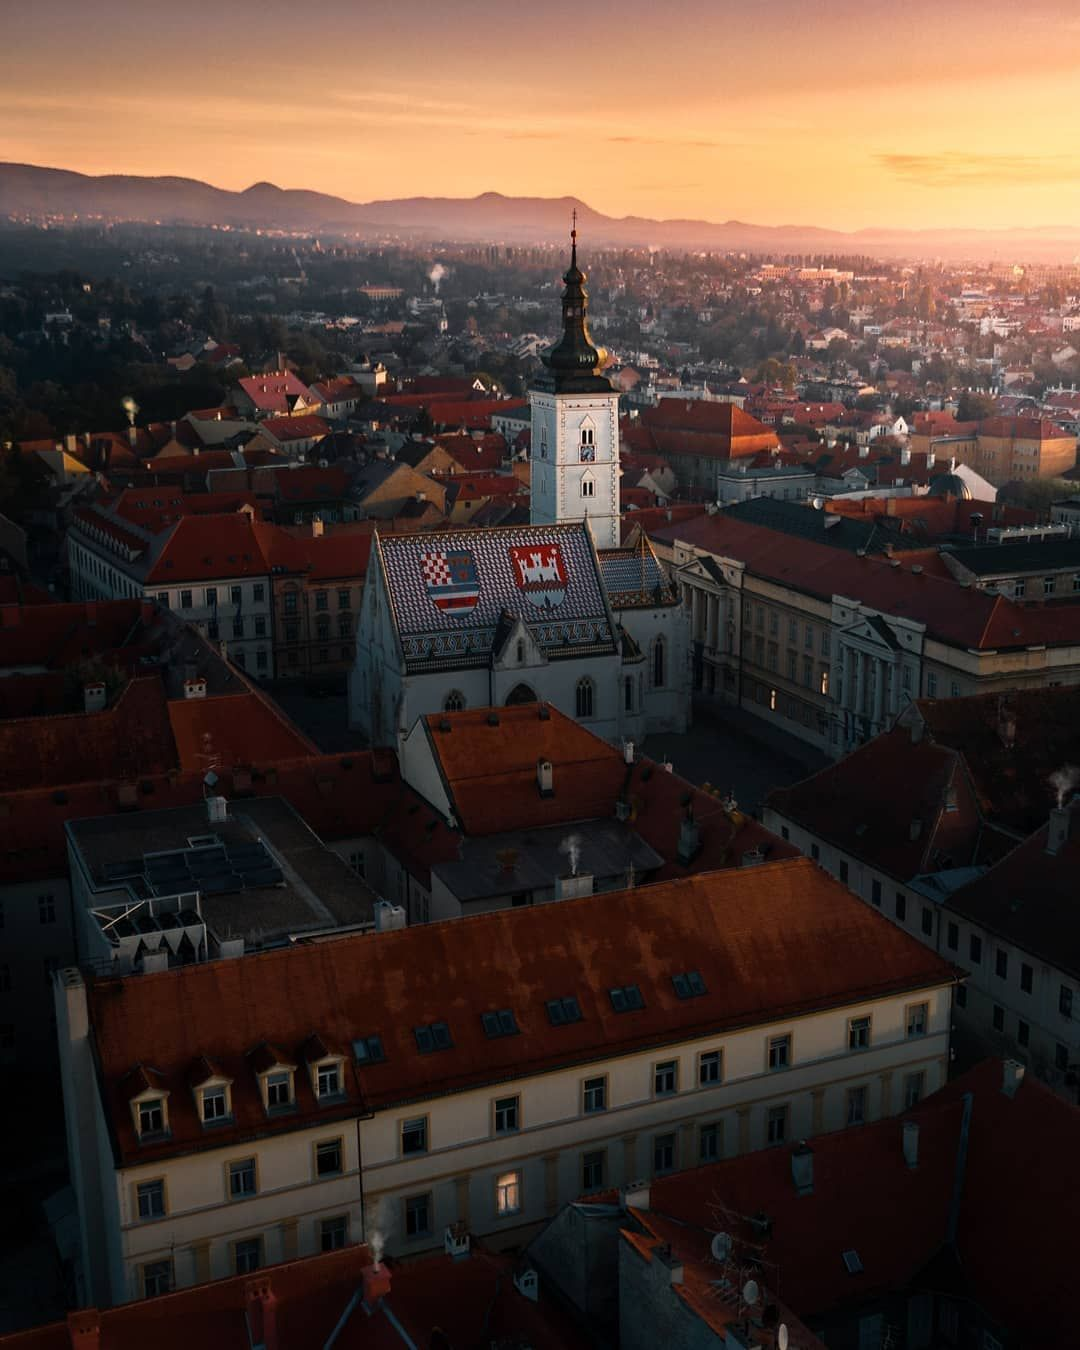 Croatia Full Of Life On Instagram Good Morning From Magical Zagreb By Watchluke The Colorful Church Of St Mark Is One Of The Zagreb Croatia Old Buildings